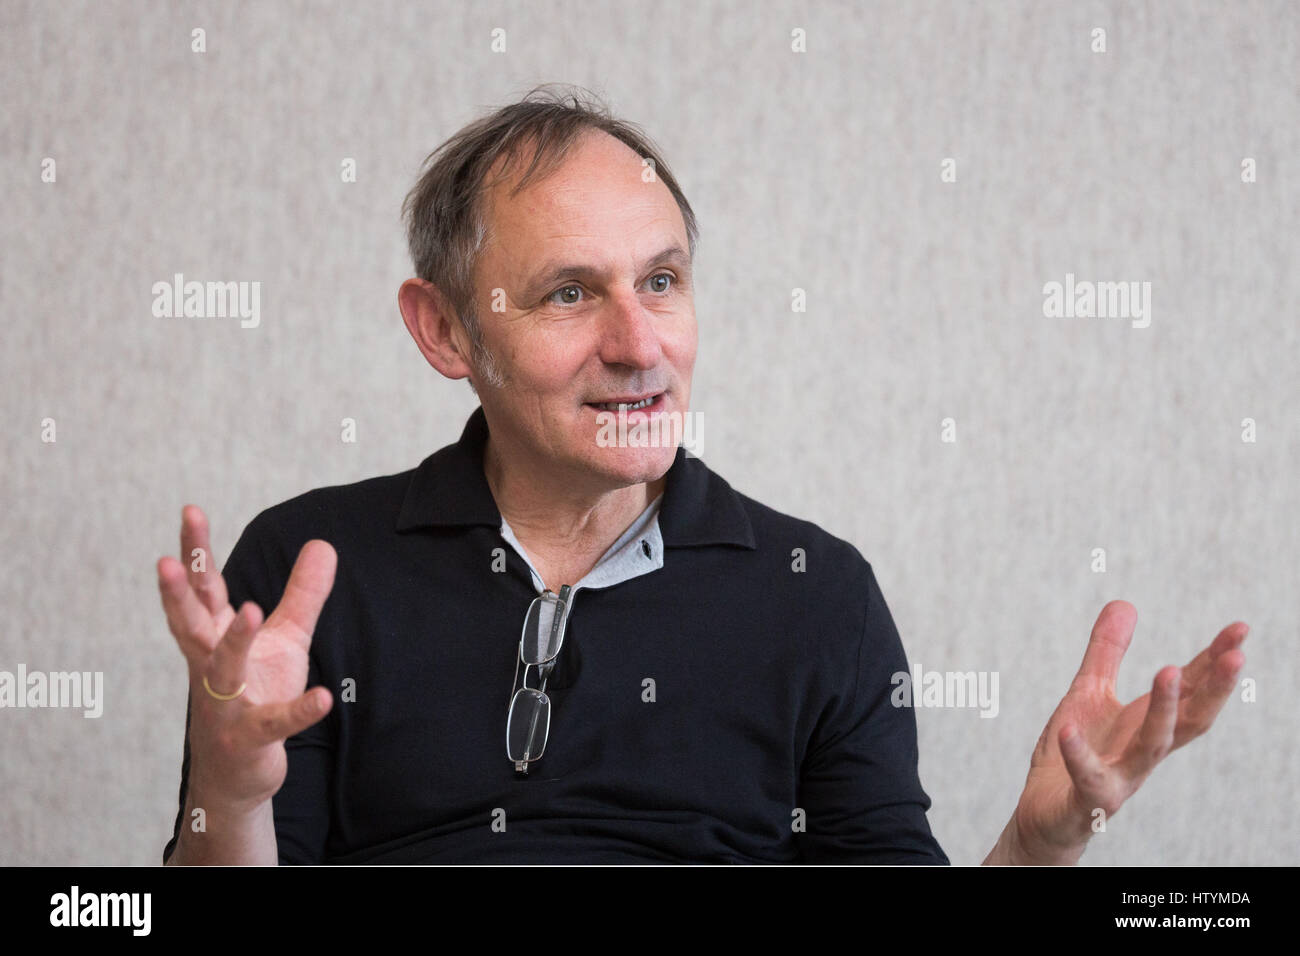 The German Architect Volker Staab Portrayed During An Interview At